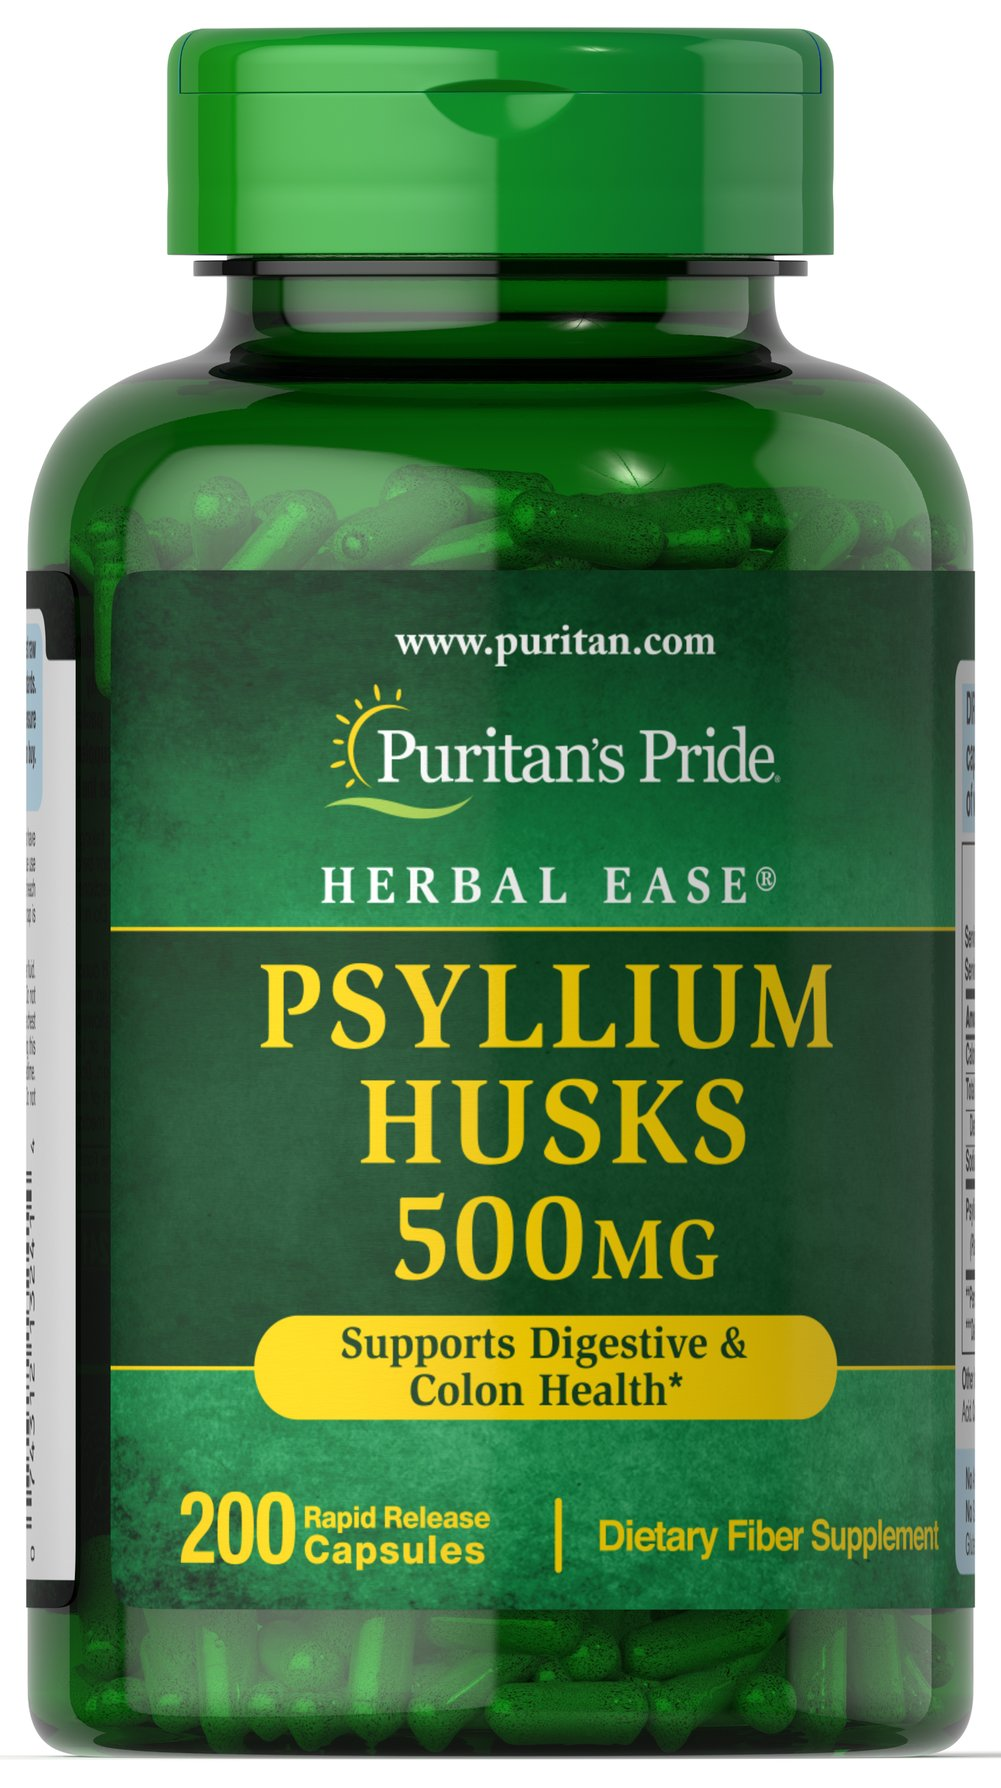 Psyllium Husks 500 mg <p>Psyllium Husks are a source of soluble fiber and a healthy addition to your diet. Our high-quality formula provides 1,000 mg of Psyllium seed husk per serving to support digestive and colon health.**</p>  200 Capsules 500 mg $14.99